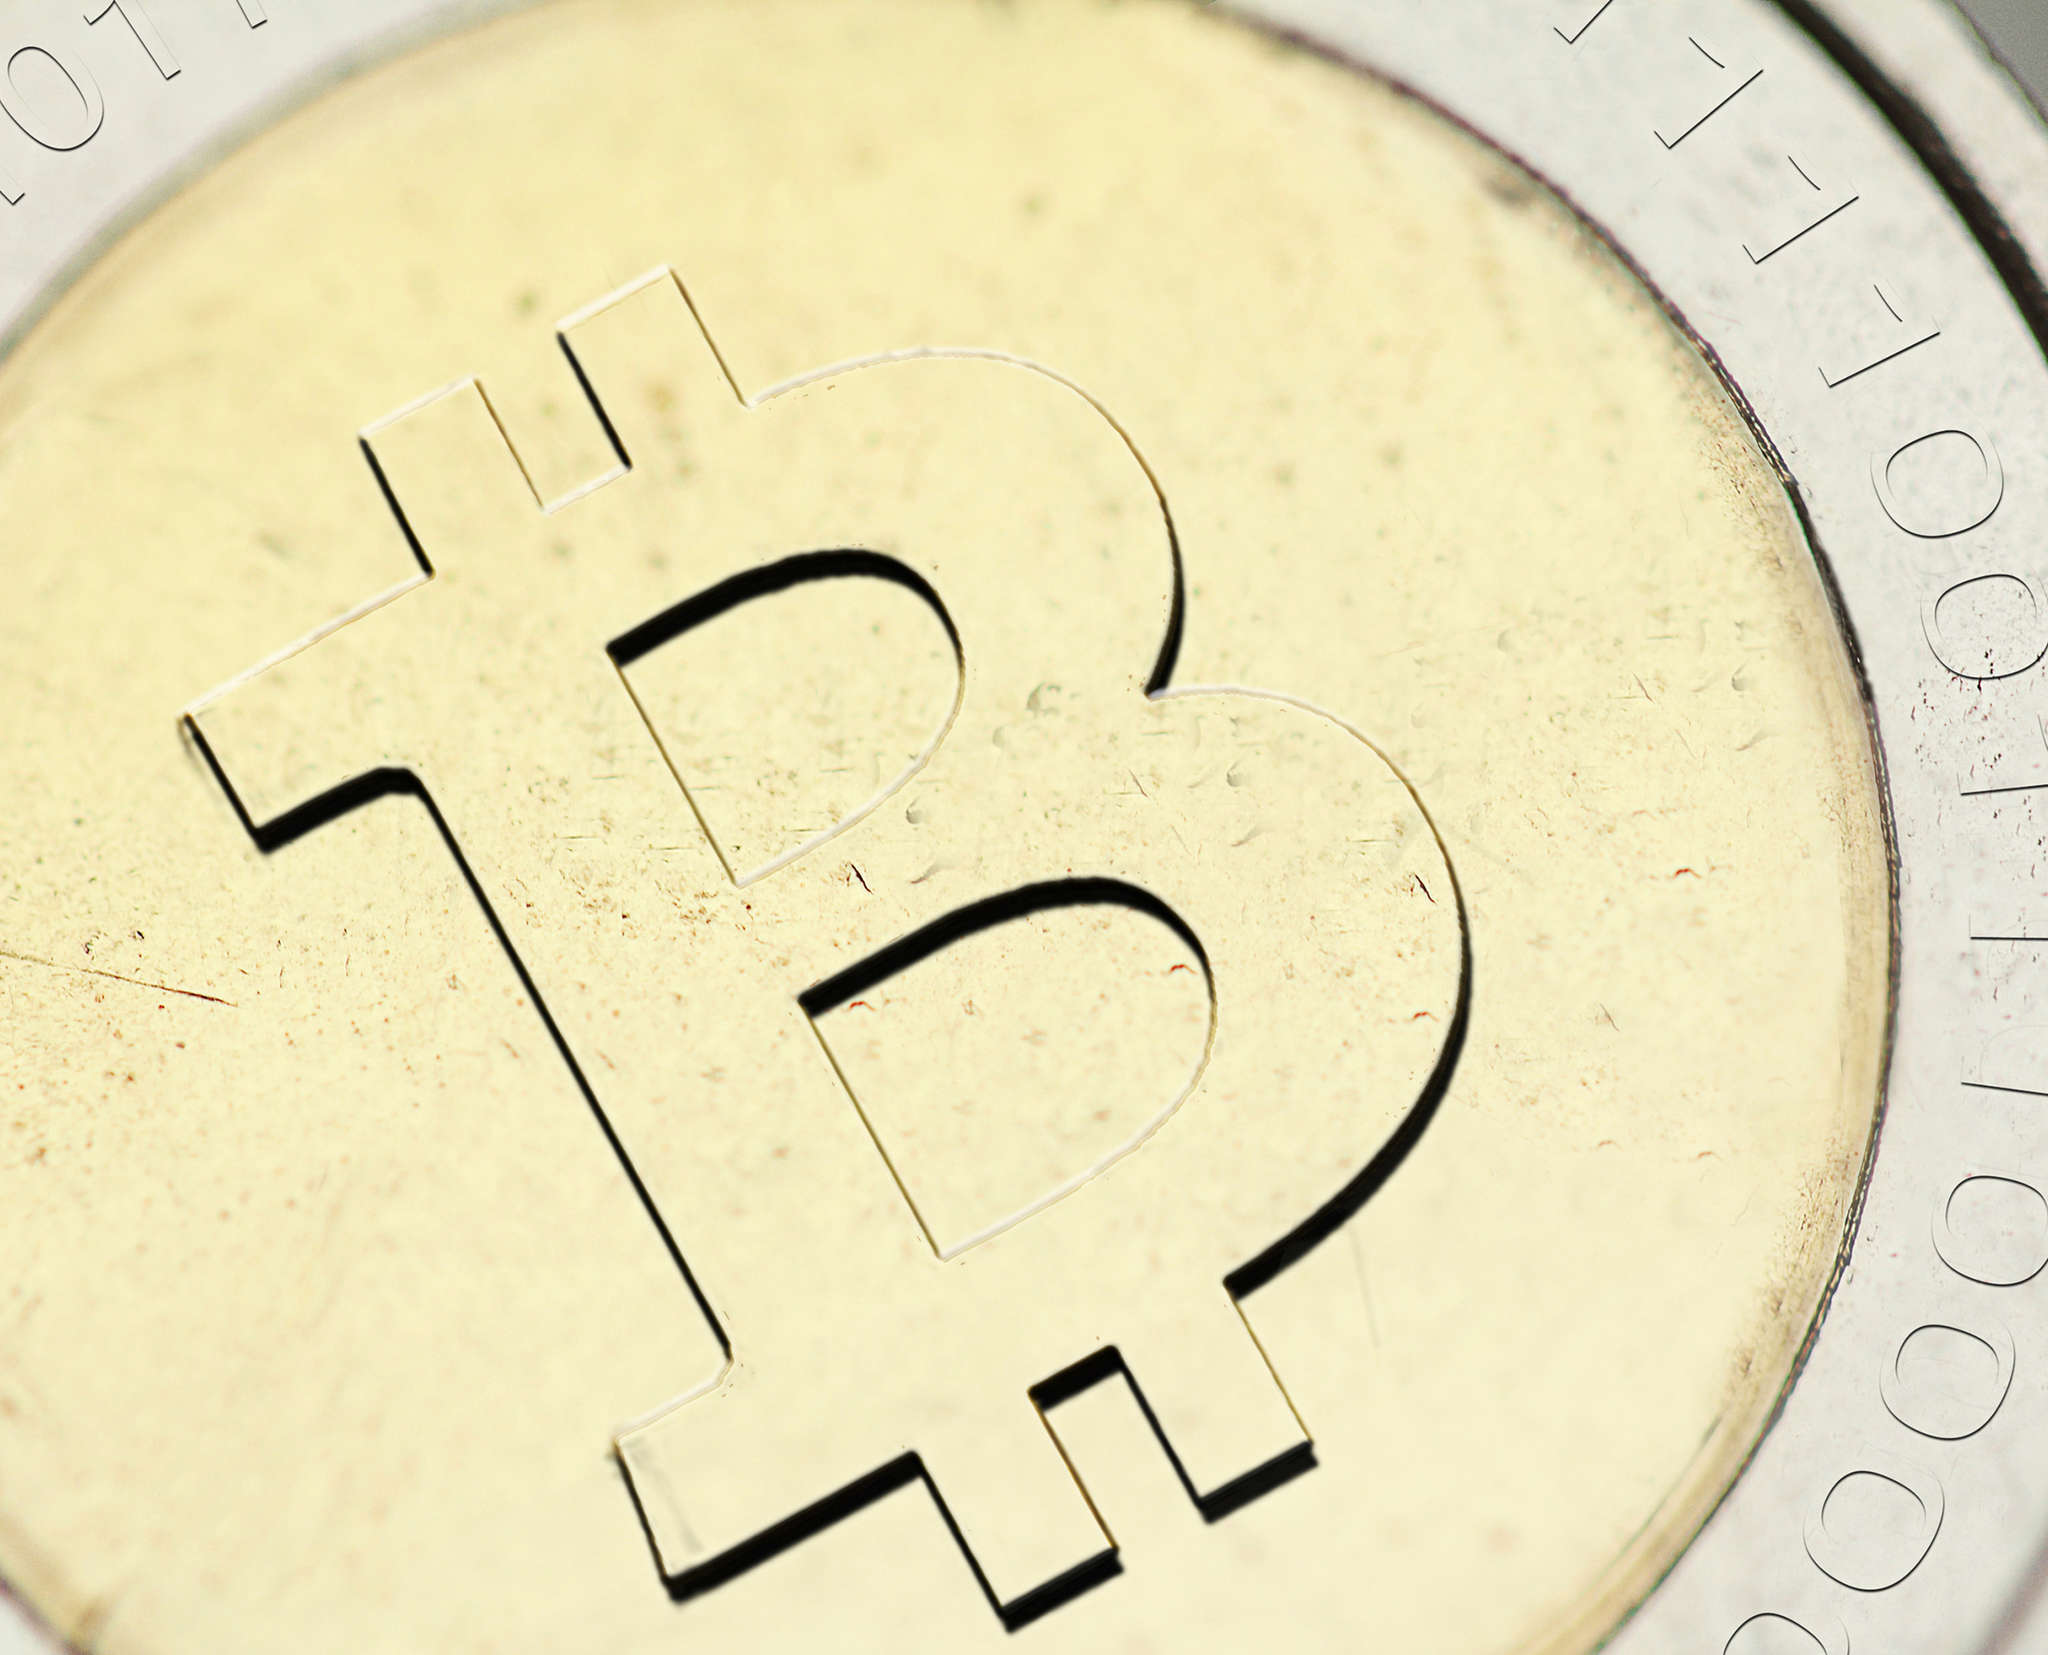 The price of bitcoin has more than tripled in six months.